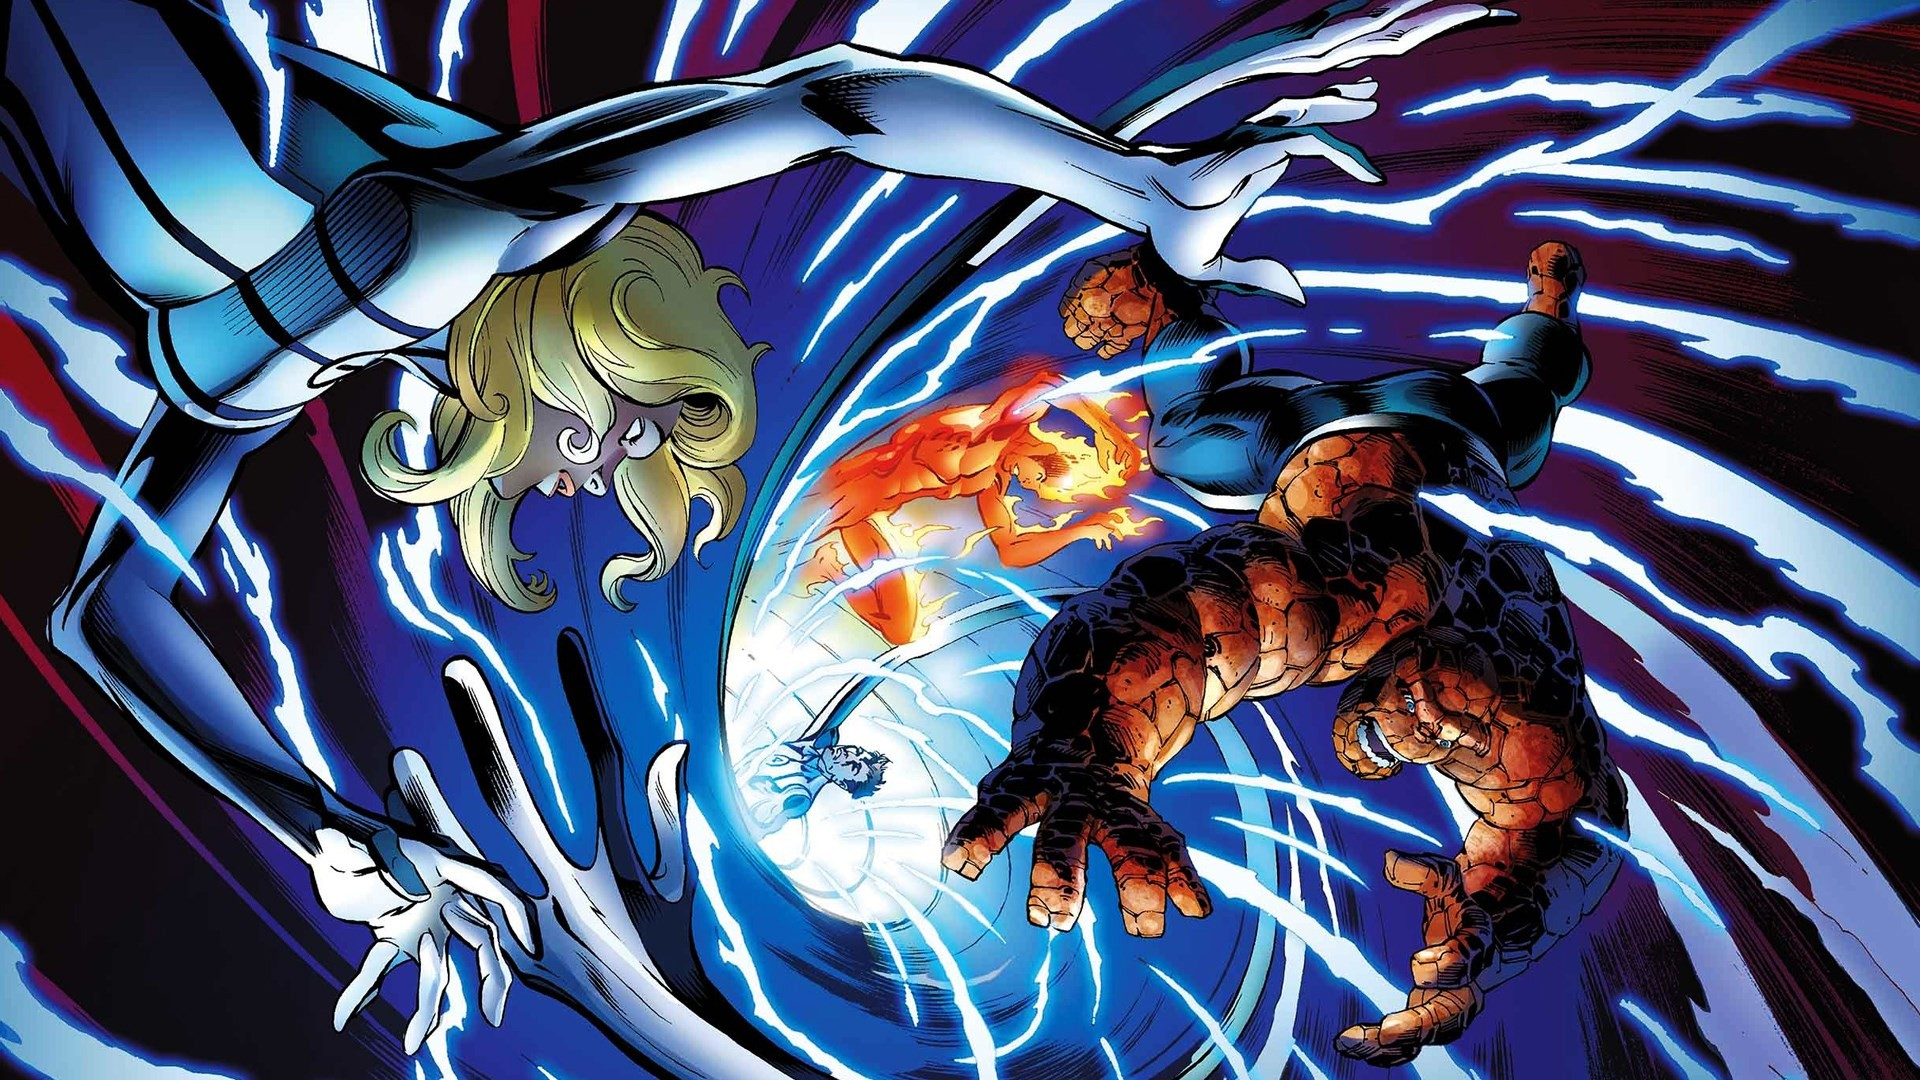 1920x1080 fantastic four wallpaper widescreen retina imac - fantastic four category